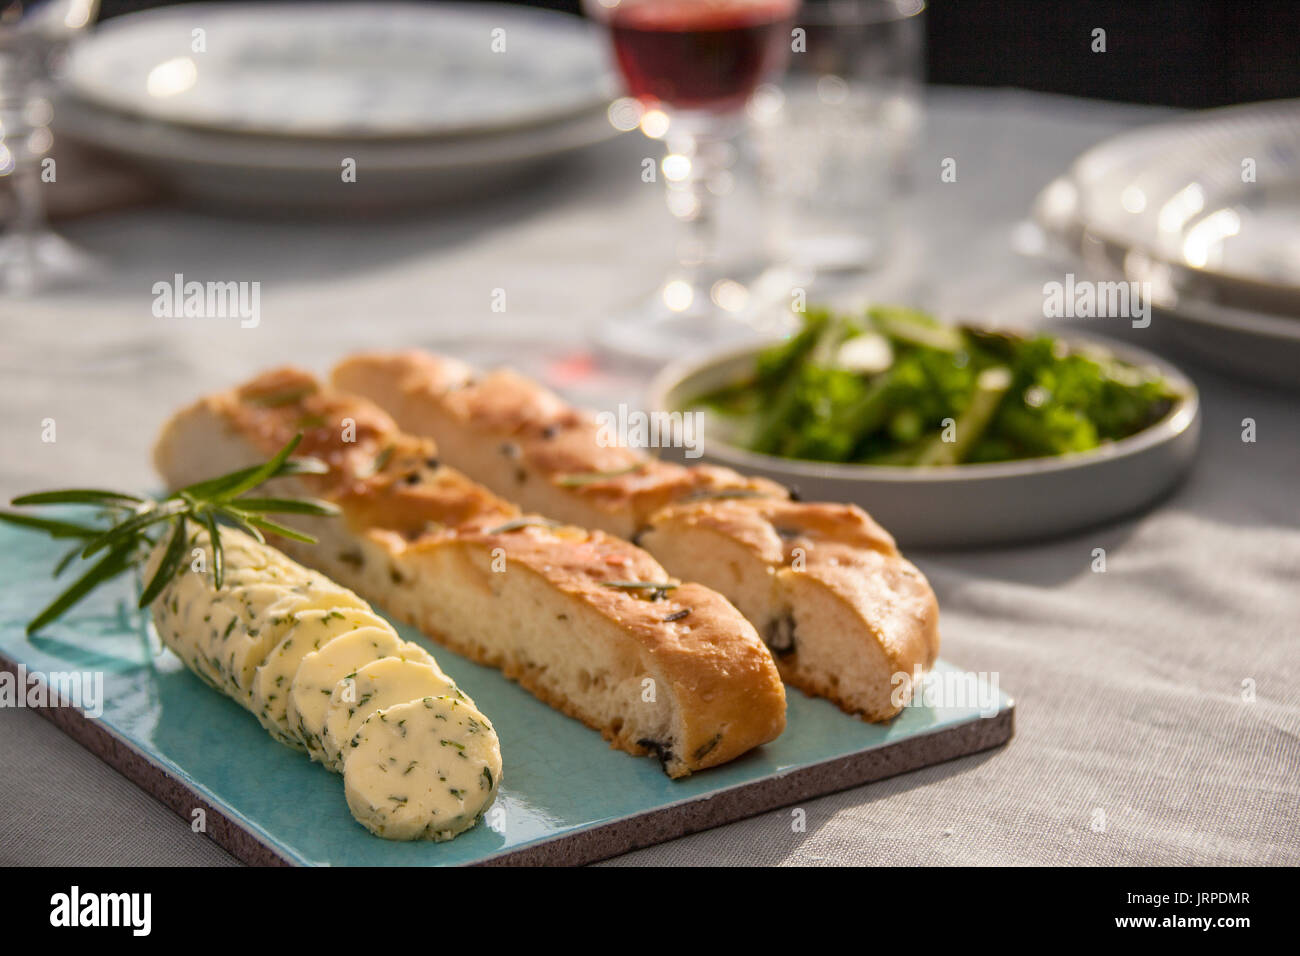 Closeup of Focaccia bread and herbed butter - Stock Image